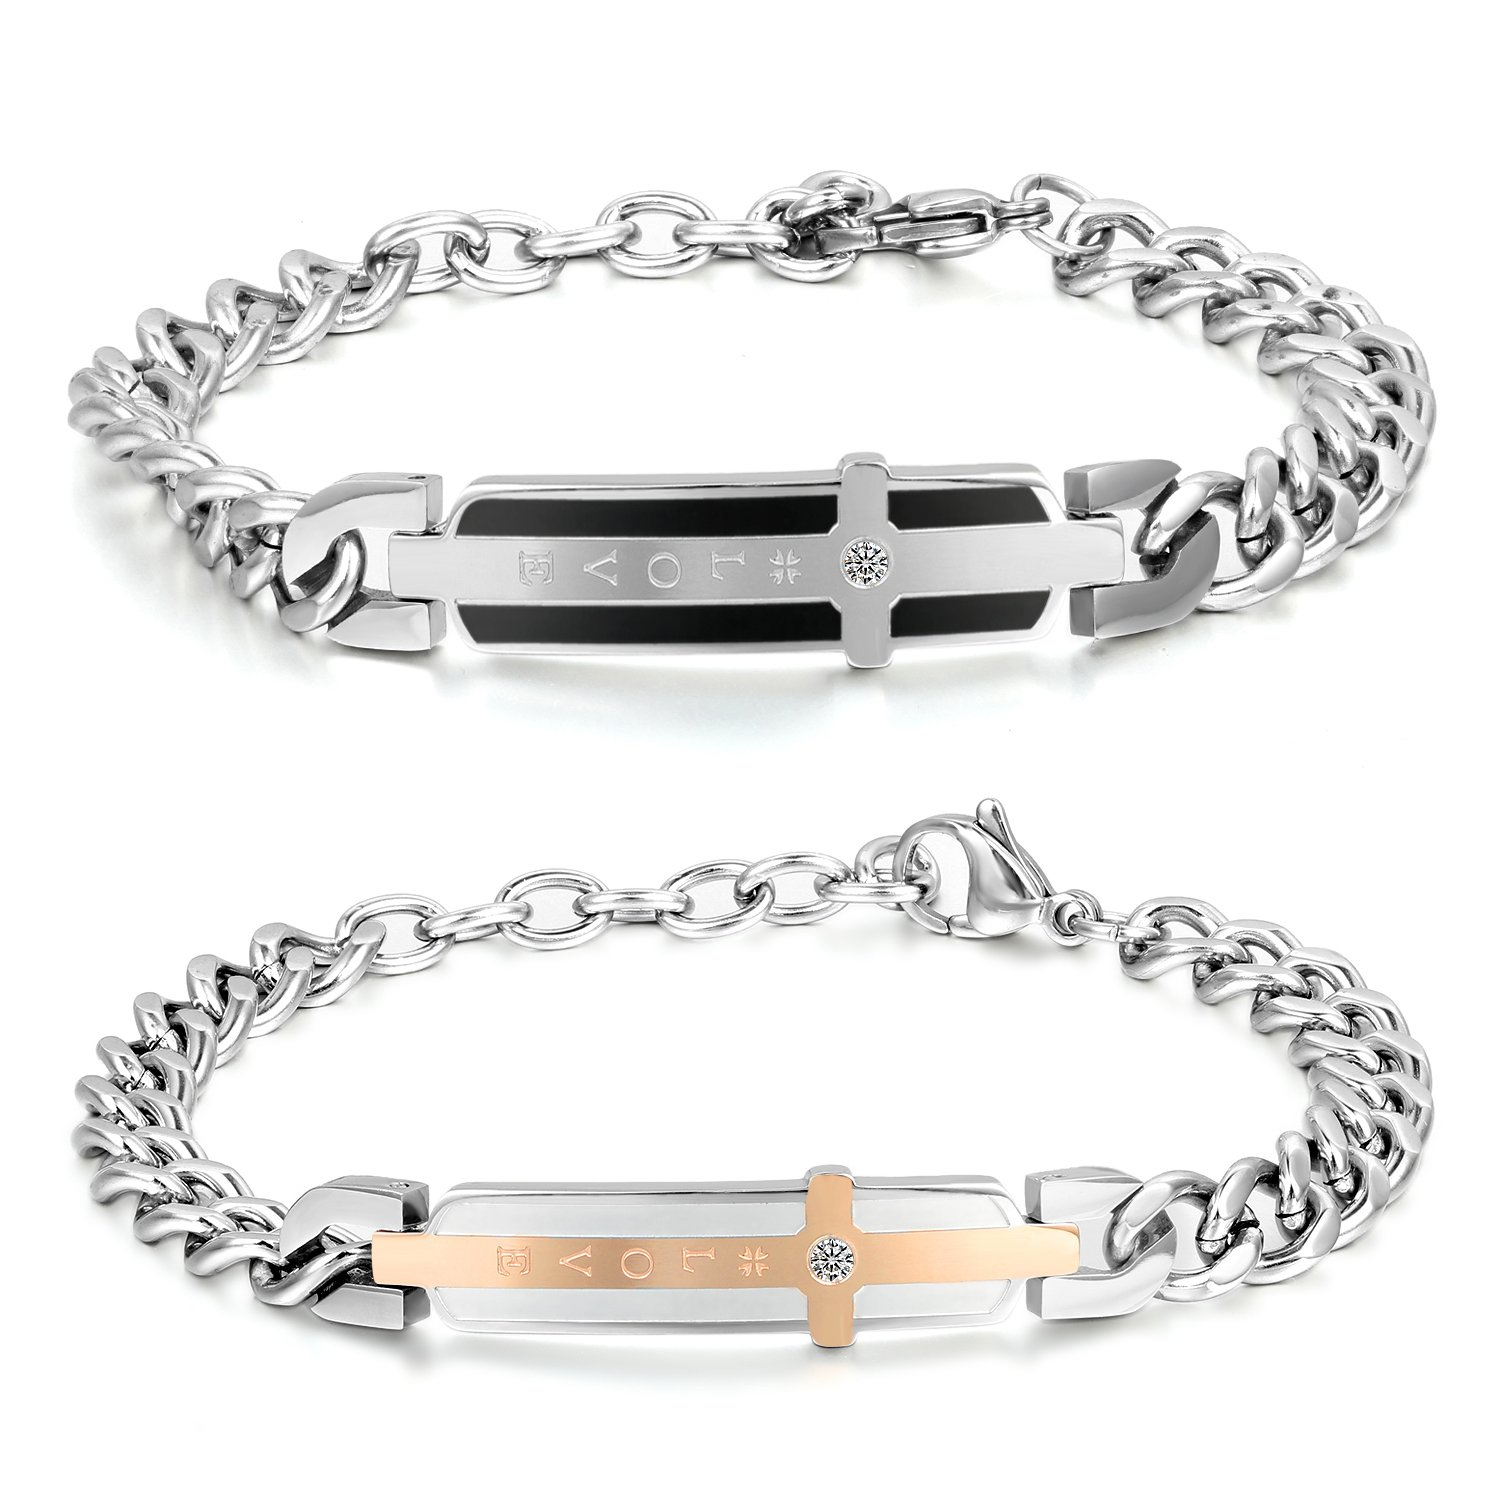 """2pcs Stainless Steel Cubic Zirconia His Queen Her King Bracelets,Romantic """"Keep Me In Your Heart """" ,CZ """"Love"""" Charm Bangle Braclets for Valentines Gifts"""